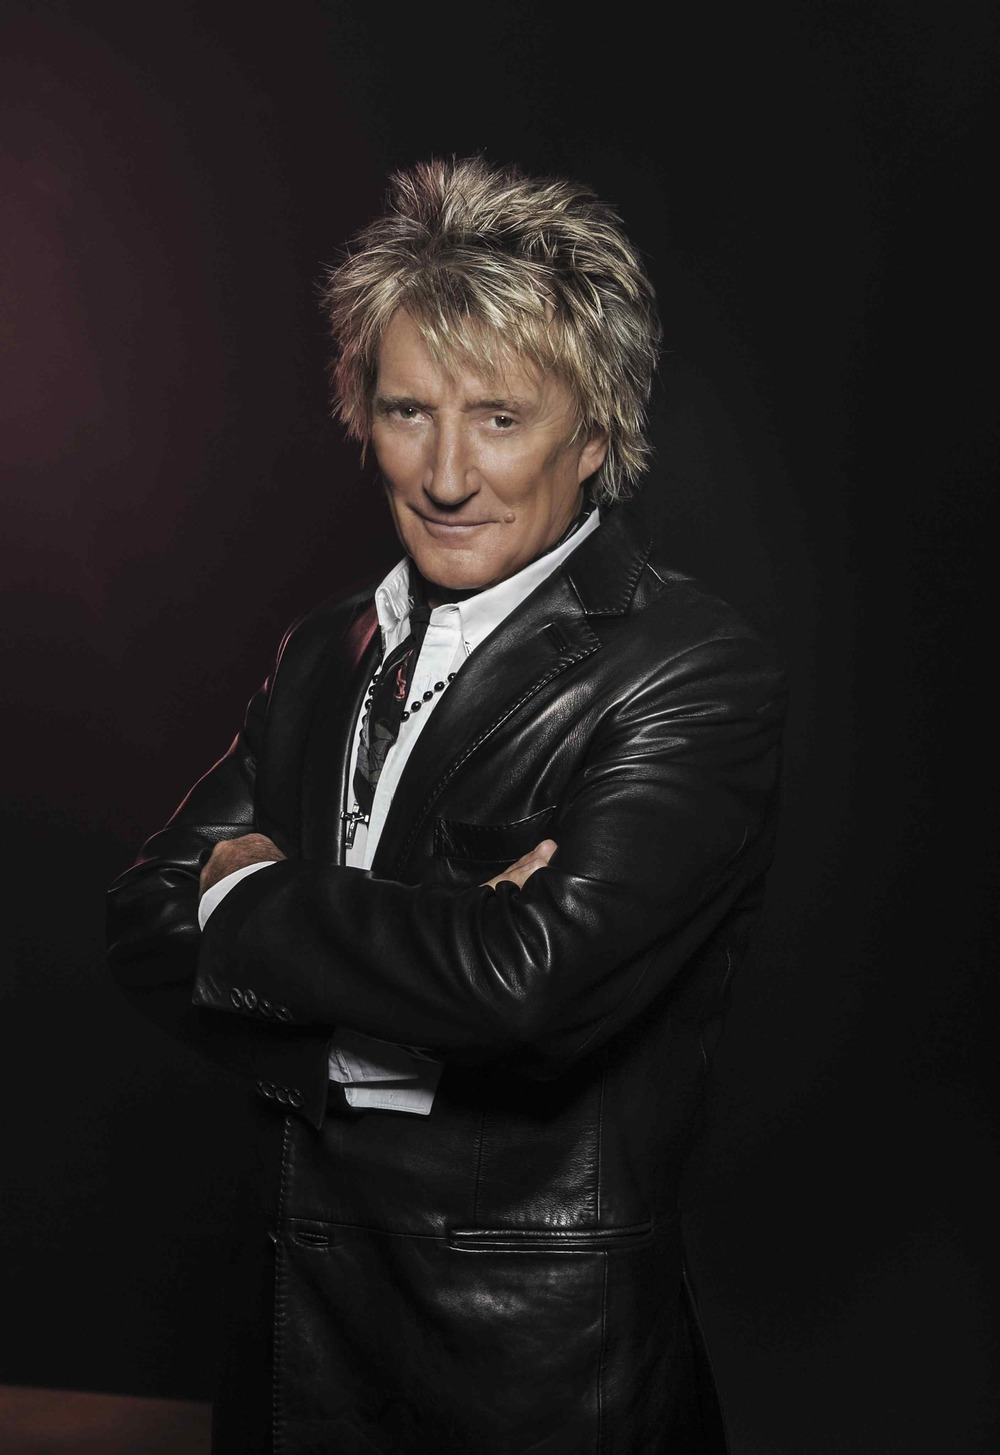 Rod-Stewart-Press-Shot-3-LR-JPG.jpg